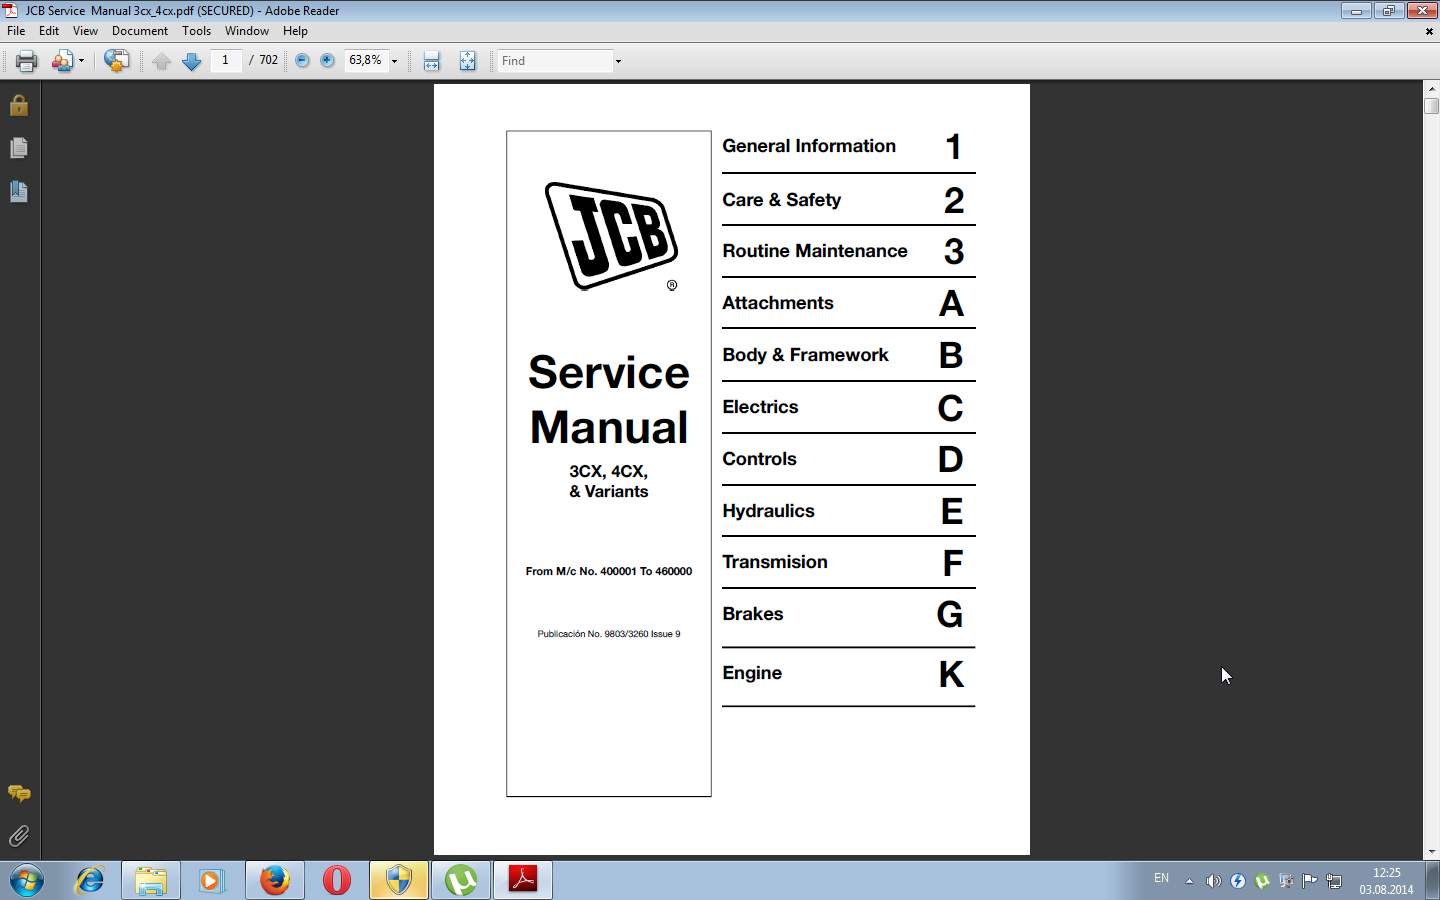 Emerson 1081 Pool Pump Manual Today Guide Trends Sample Motor Wiring Diagram Ford Escape 2017 Owners Pdf Download Autos Post